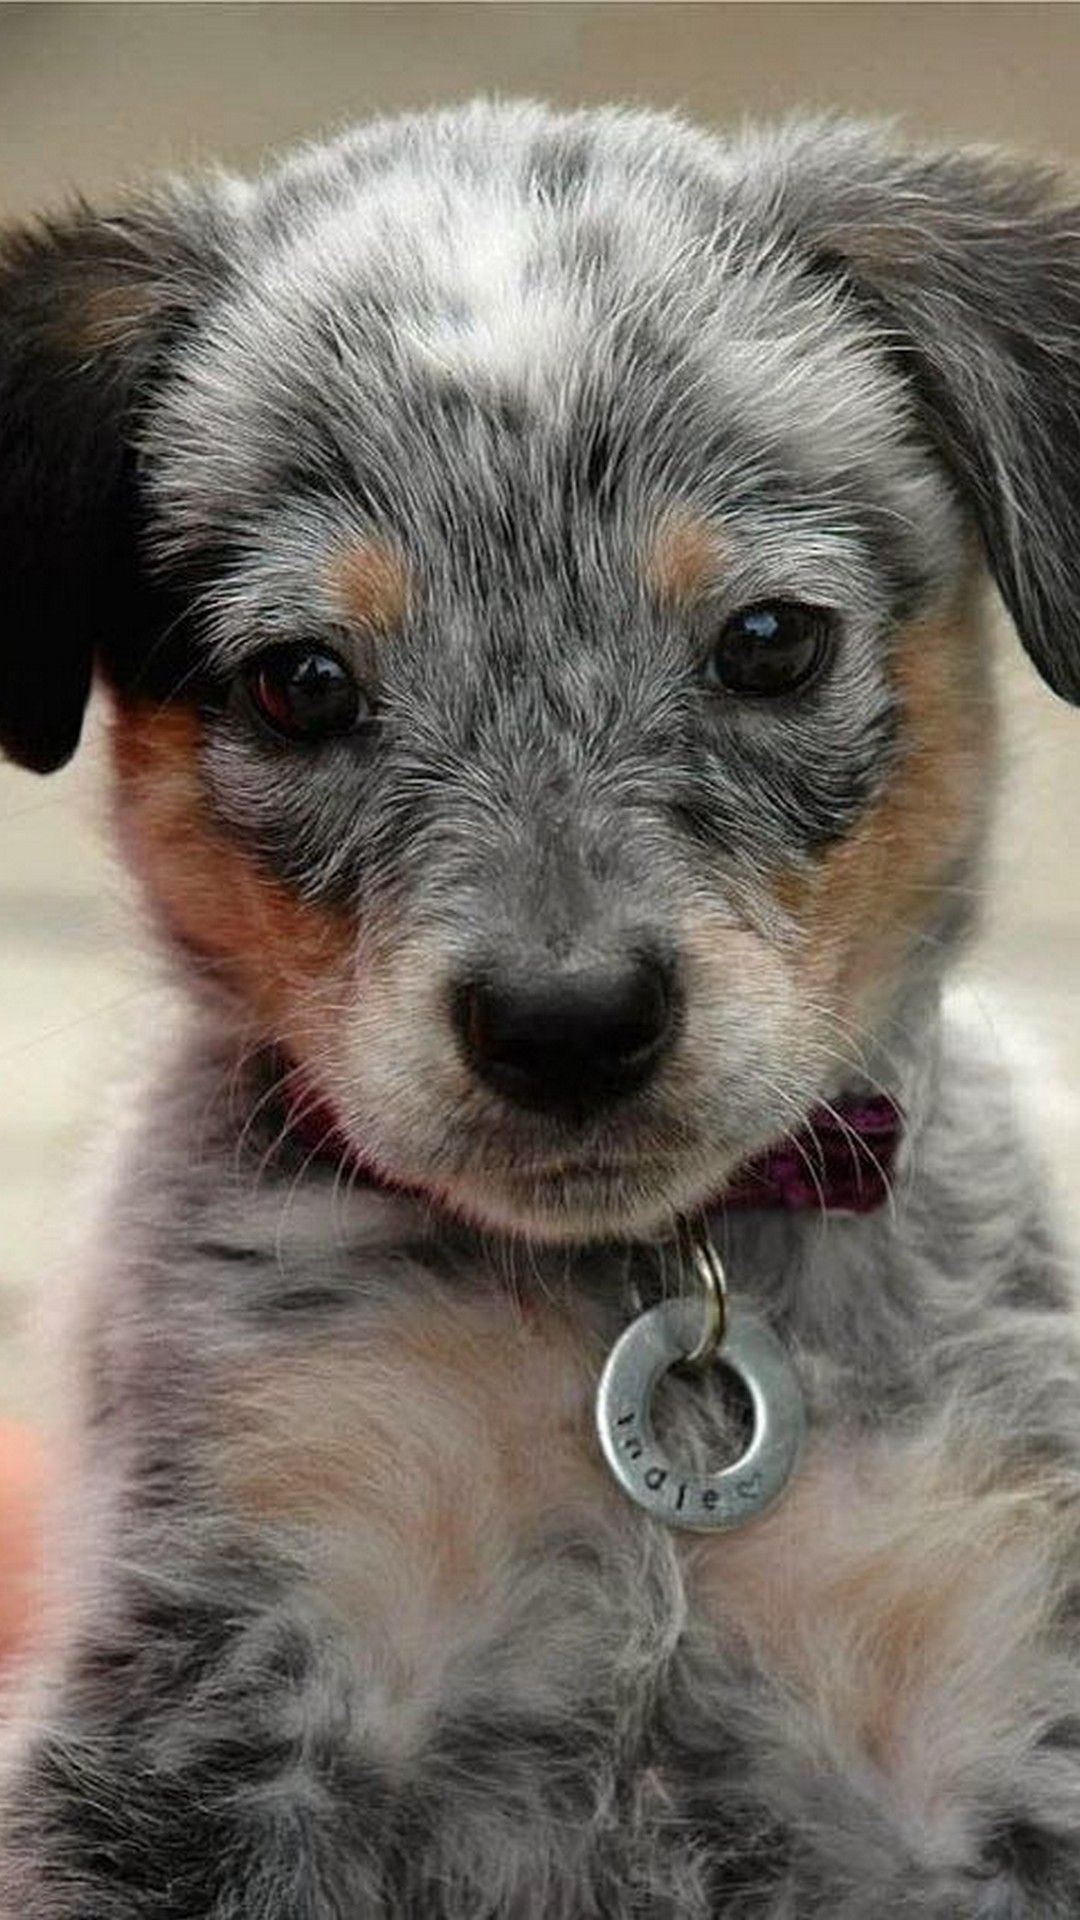 Wallpapers Funny Puppies Is High Definition Phone Wallpaper You Can Make This Wallpaper For Your Iphone 5 6 7 8 X Bac Cute Animals Heeler Puppies Pet Tags